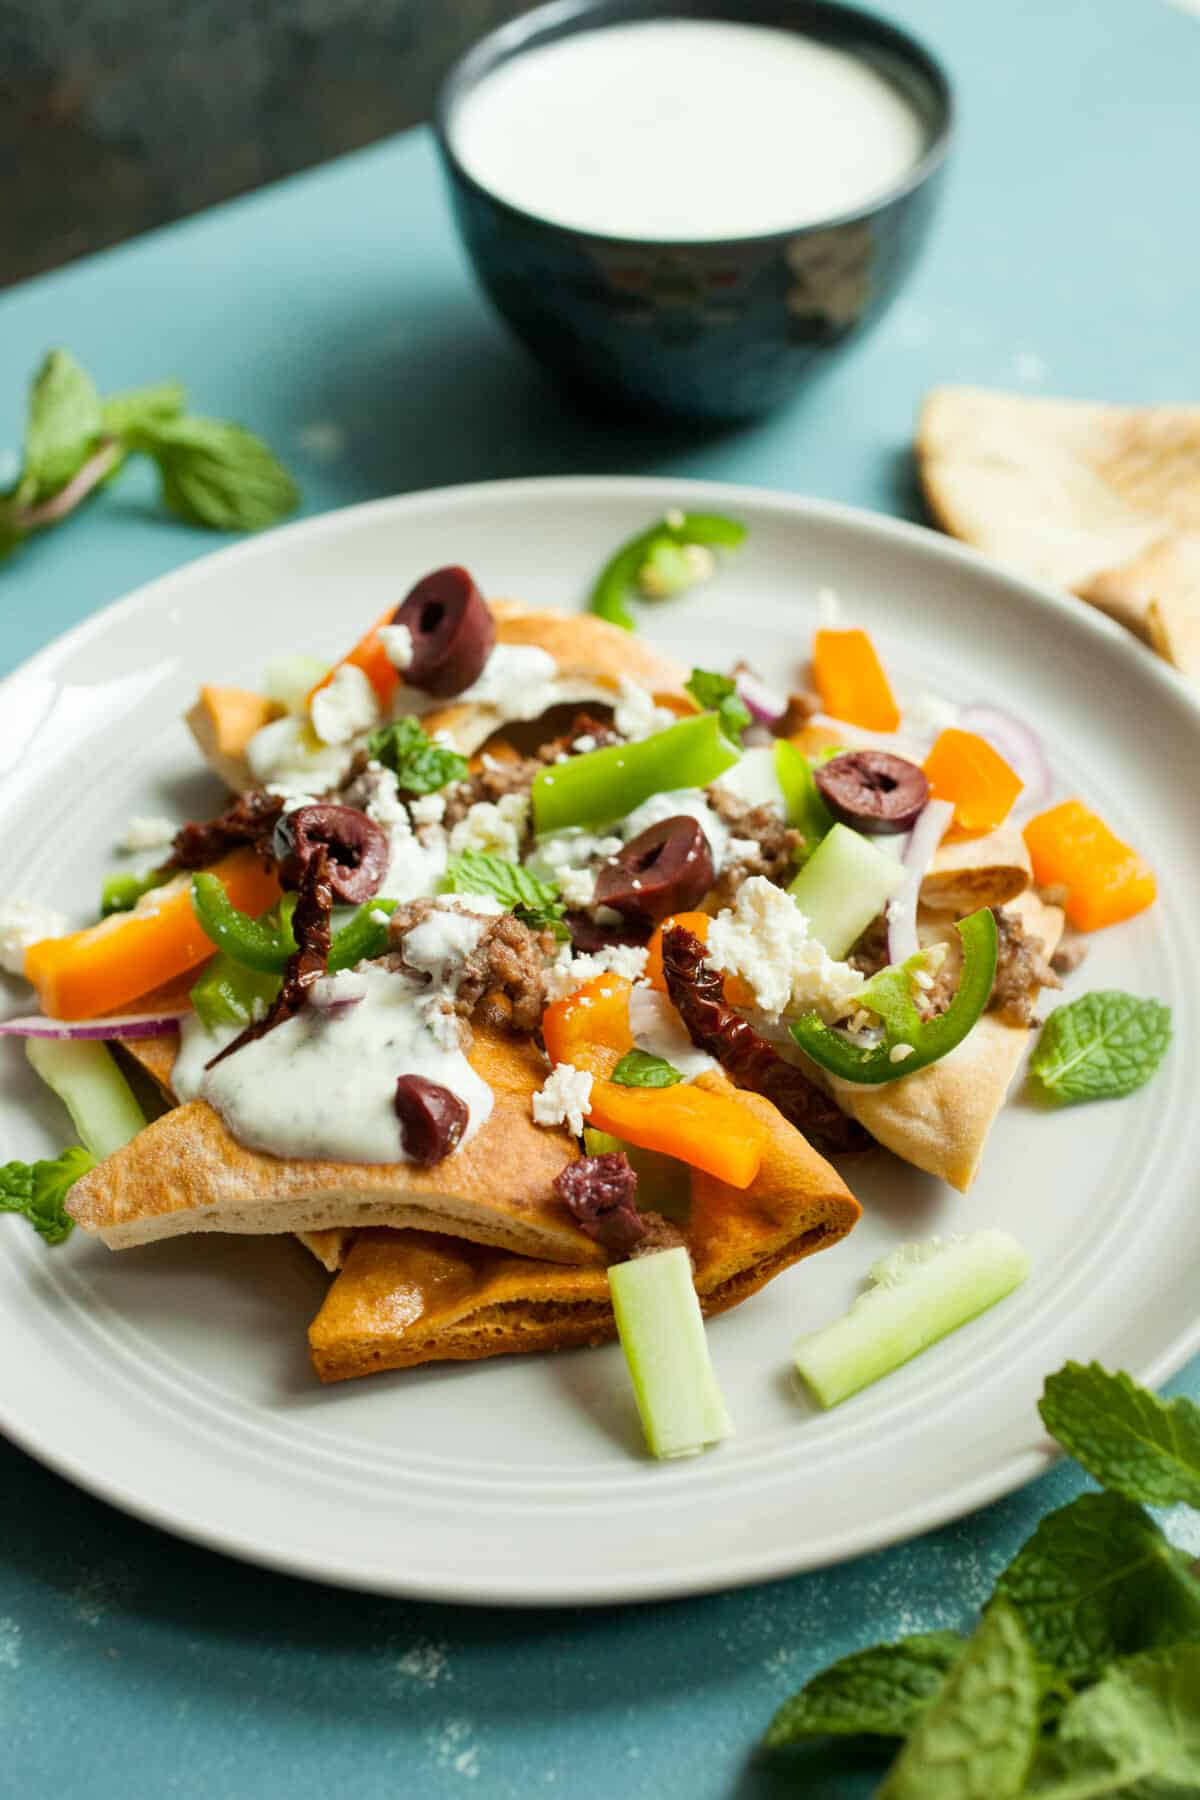 Greek Nachos: Toasted crispy pita chips topped with lamb, a simply feta sauce, and loads of Mediterranean veggies. One of the few nachos that are actually fine a bit cold or room temperature! So delicious and fresh! | macheesmo.com